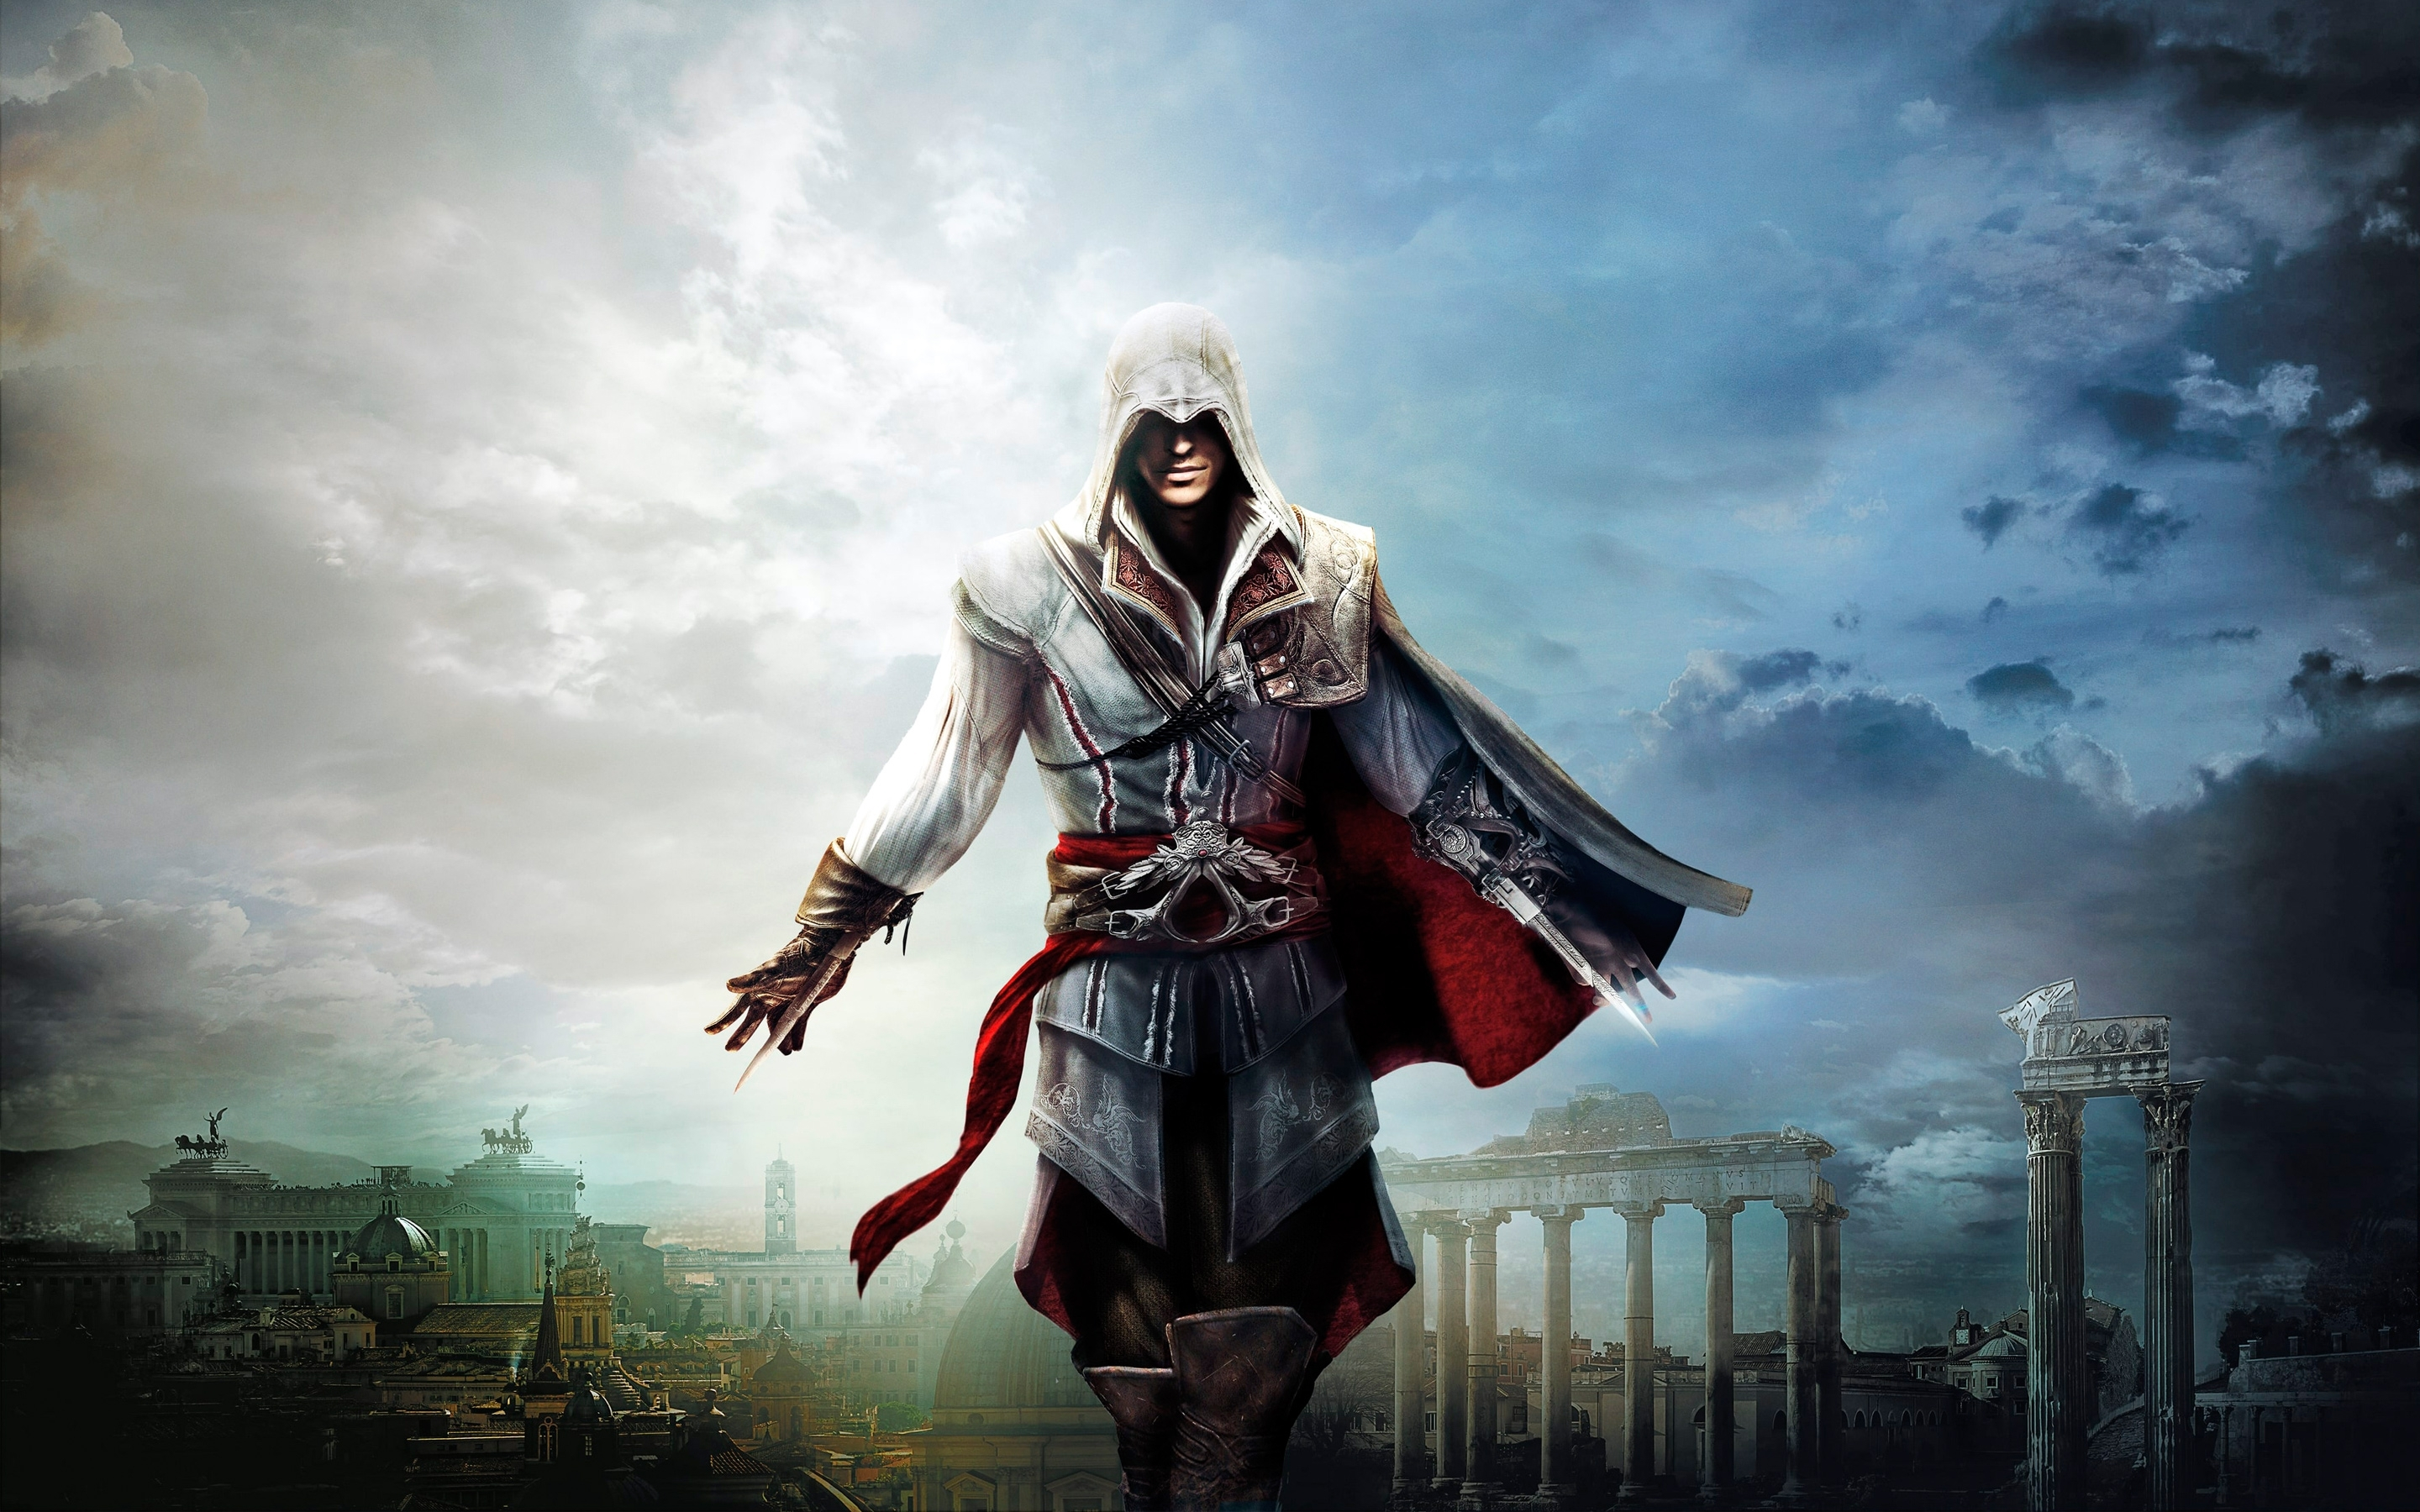 ezio assassins creed the ezio collection 4k wallpapers | hd